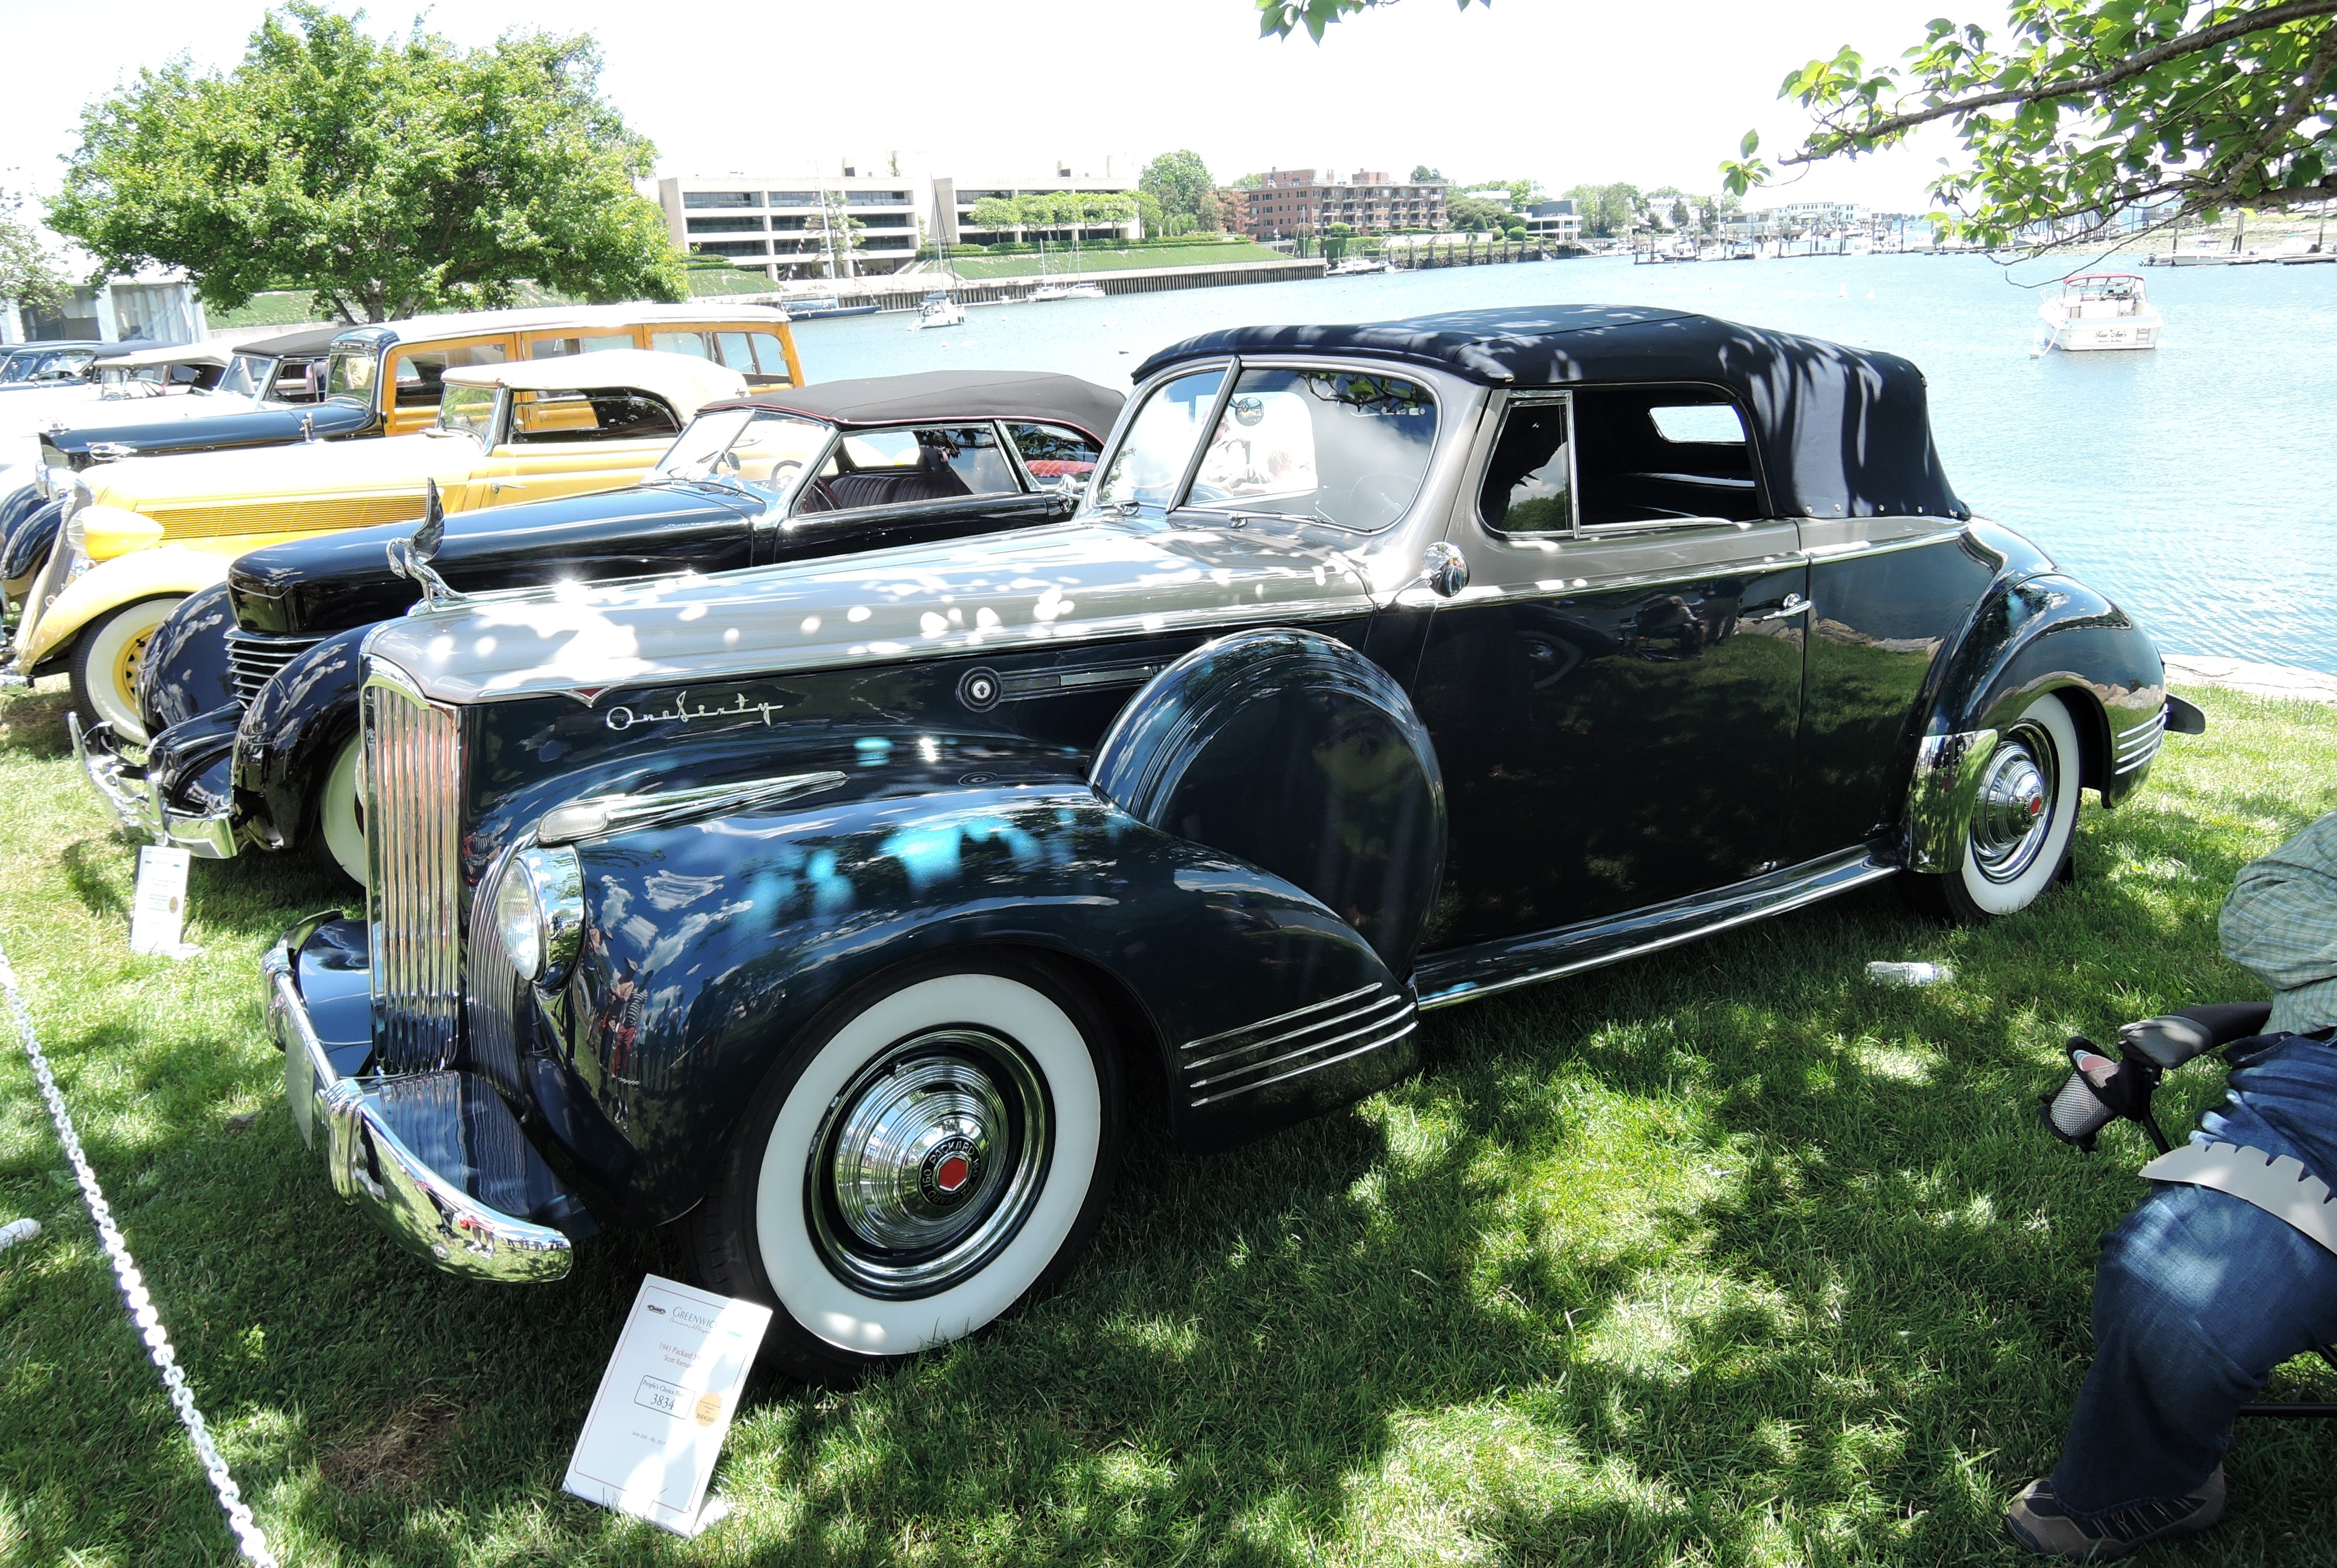 blue/silver 1941 Packard 1903 Convertible - Greenwich Concours d'Elegance 2017